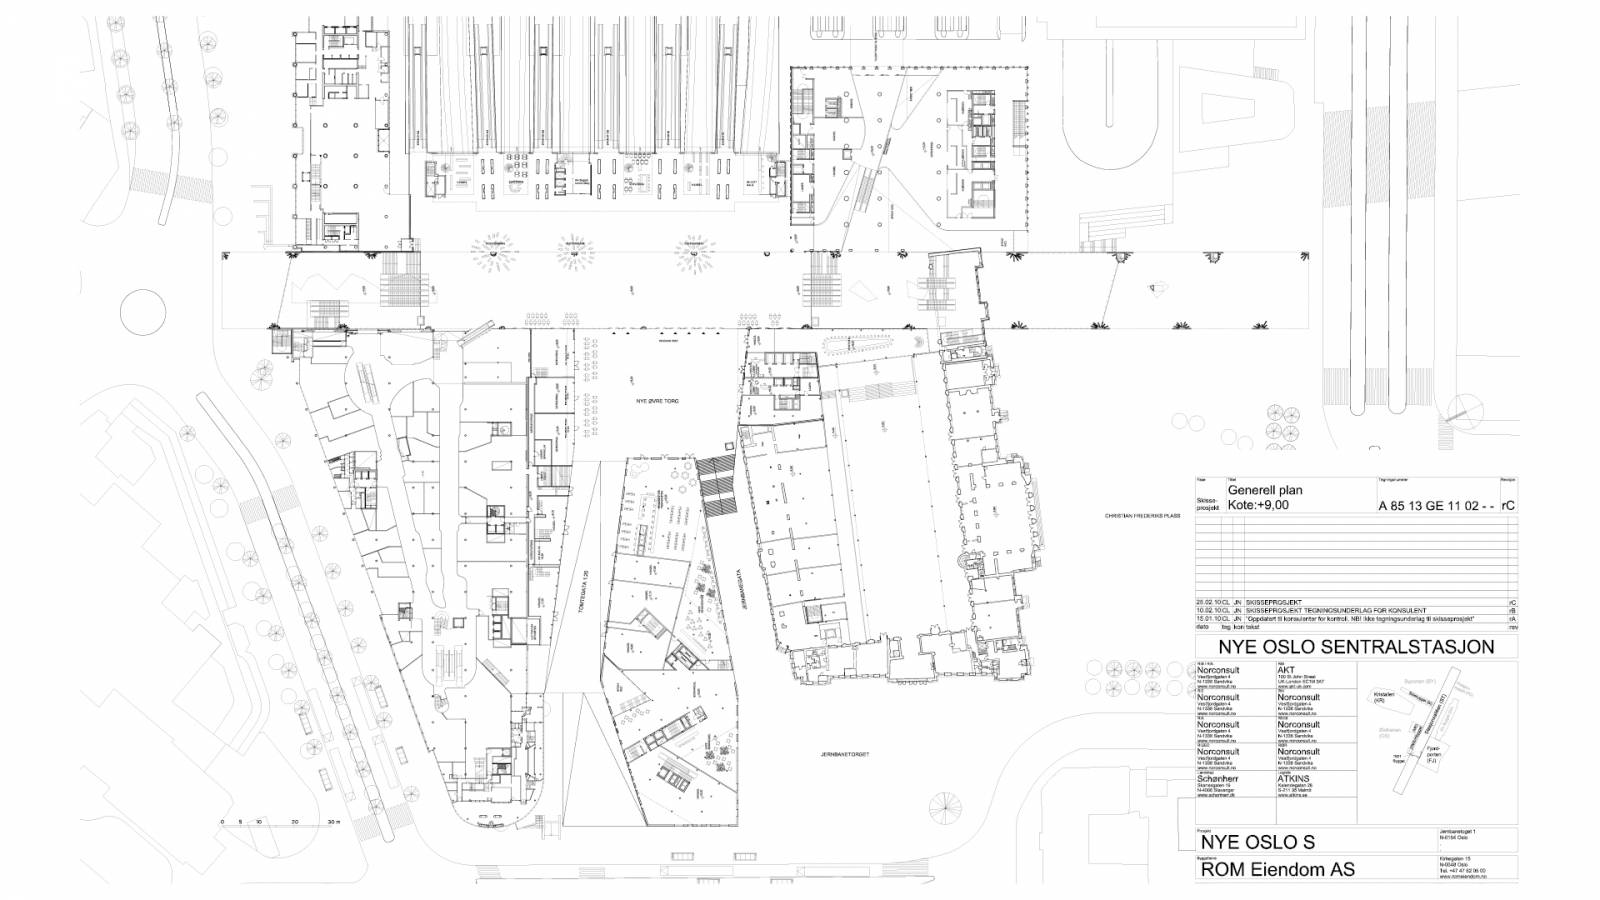 PLAN LEVEL +9 - OSLO CENTRAL STATION - SPOL Architects